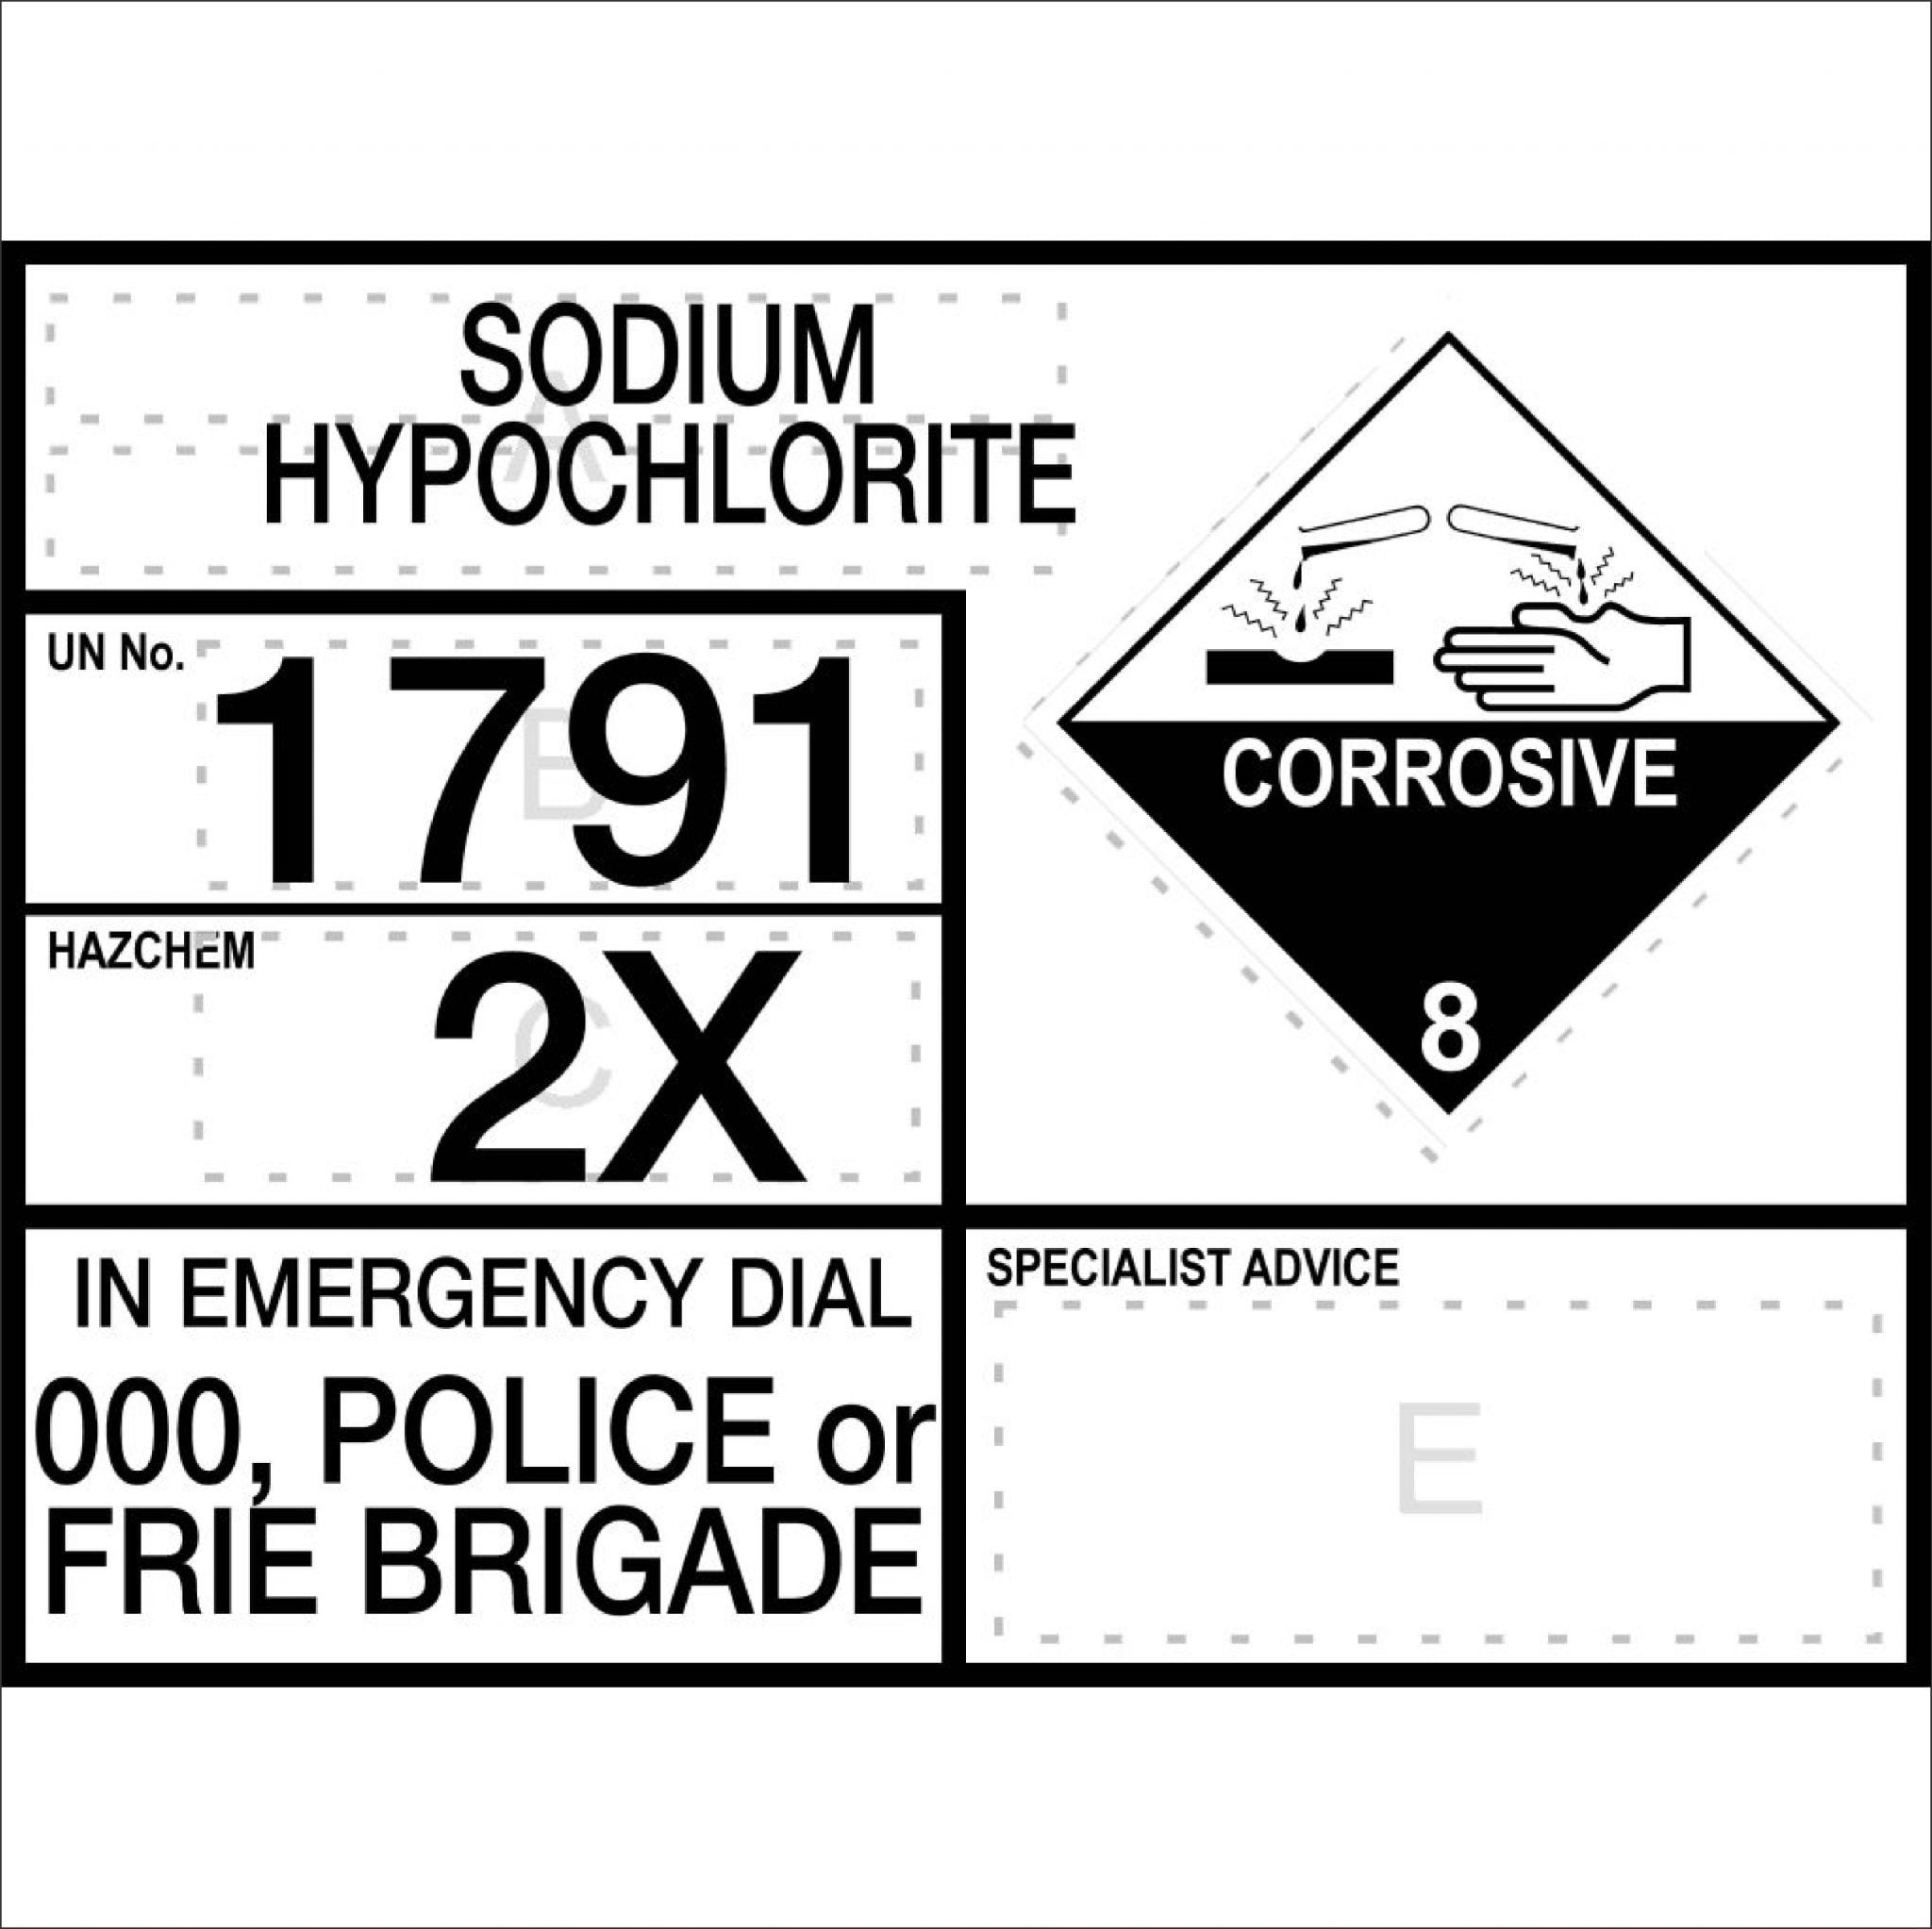 Hazchem Signs SODIUM HYPOCHLORITE - INFORMATION PANEL